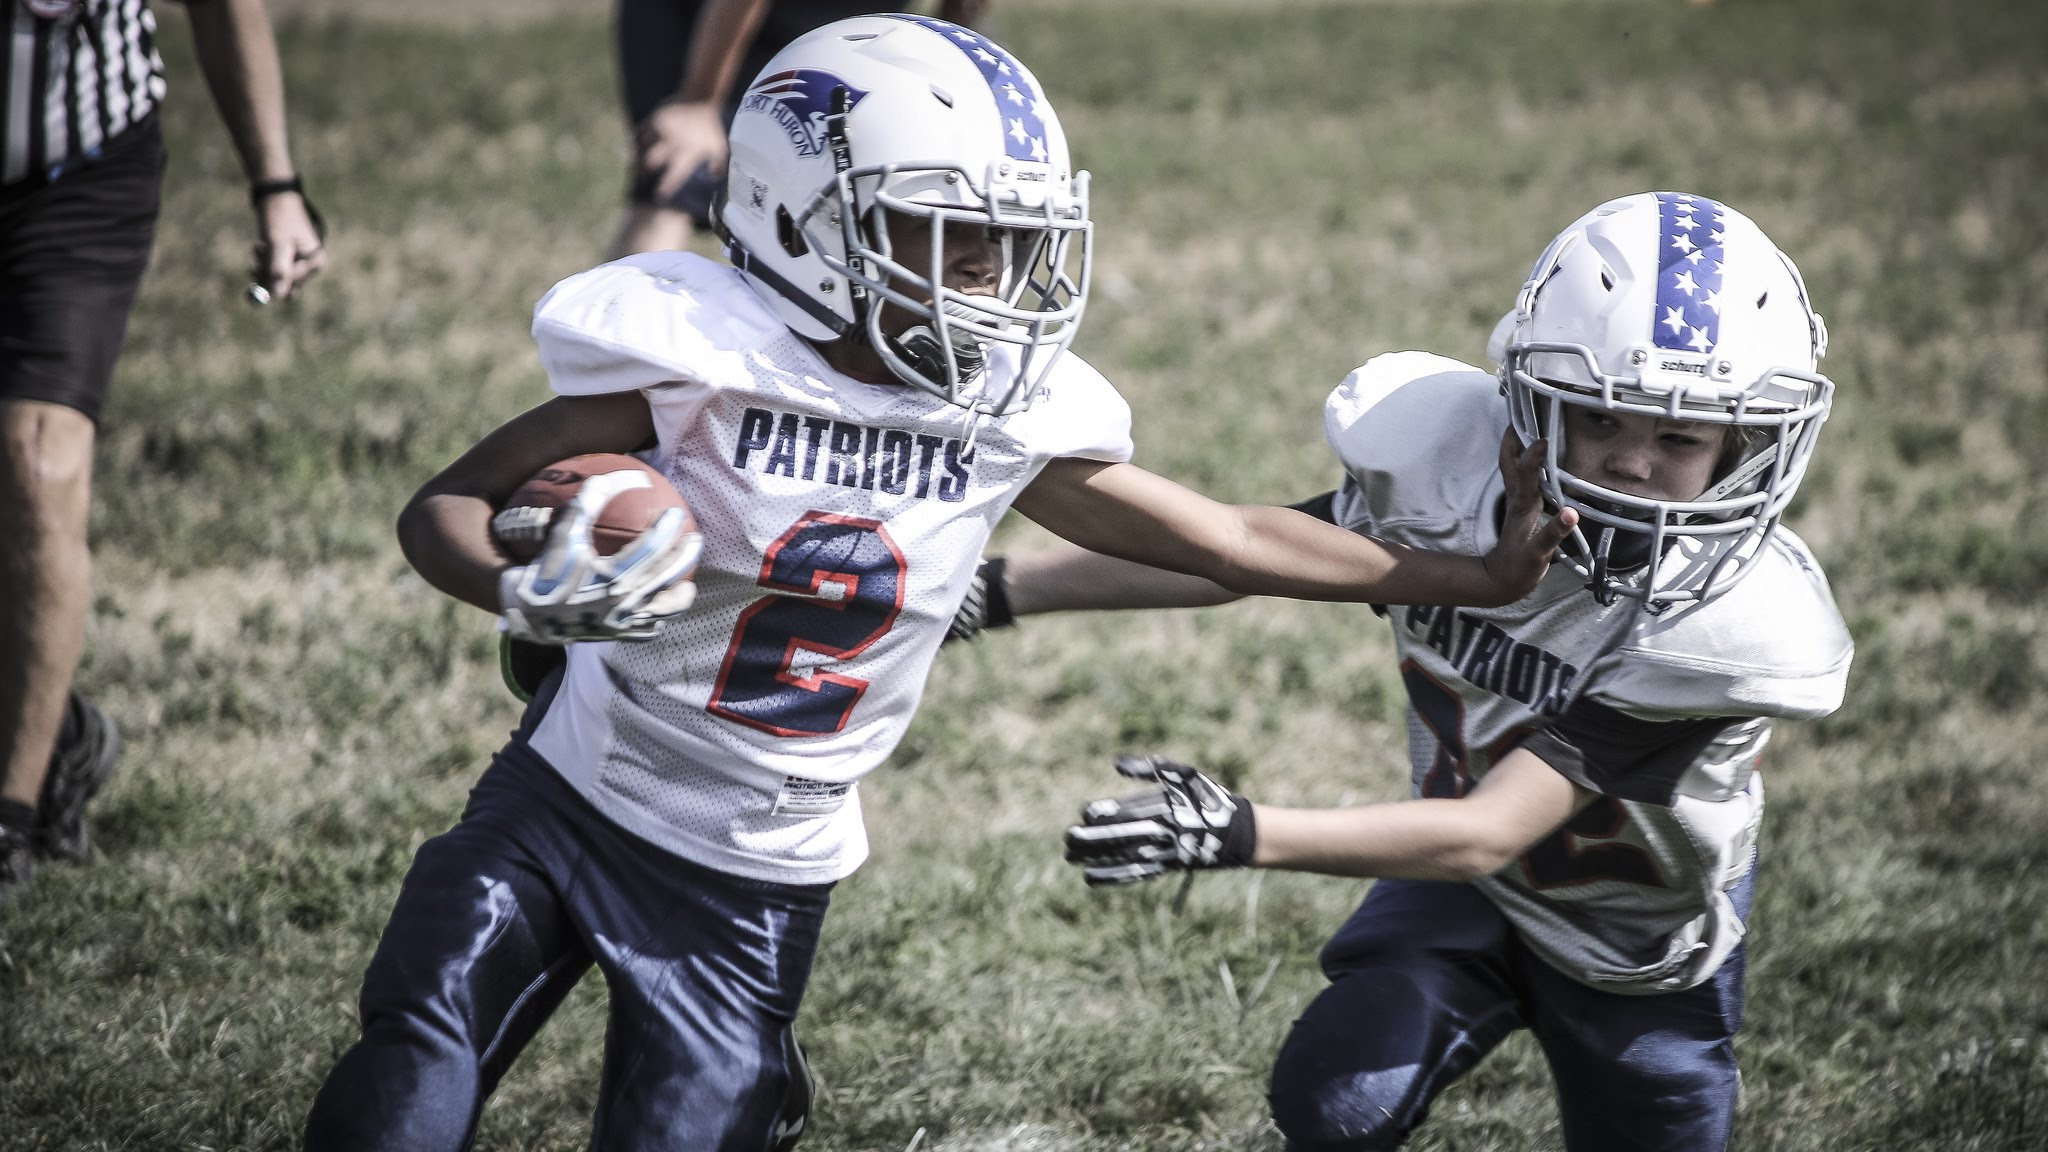 GOOD Sports: New research shows concussion laws are working -